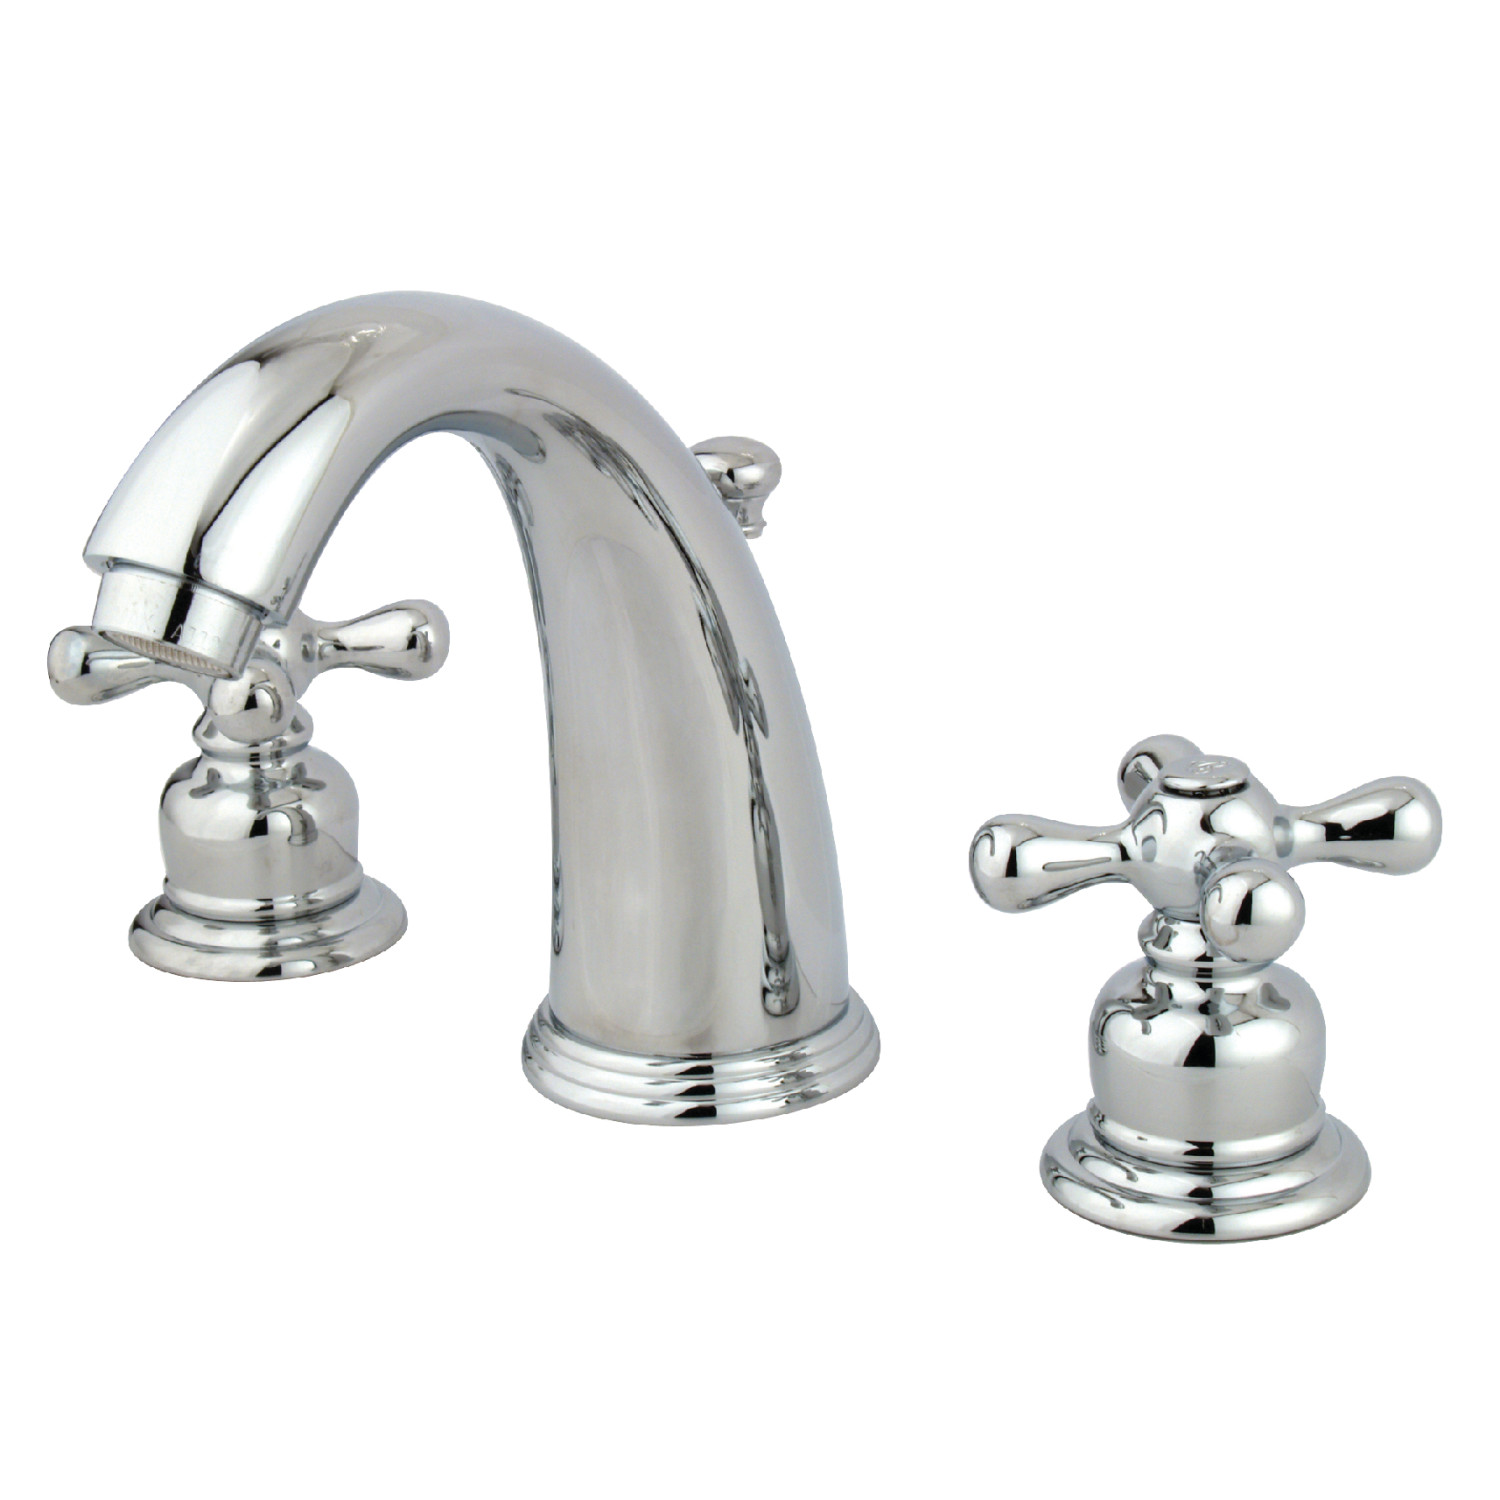 Vintage 2-Handle Three-Hole Deck Mounted Widespread Bathroom Faucet in Polished Chrome